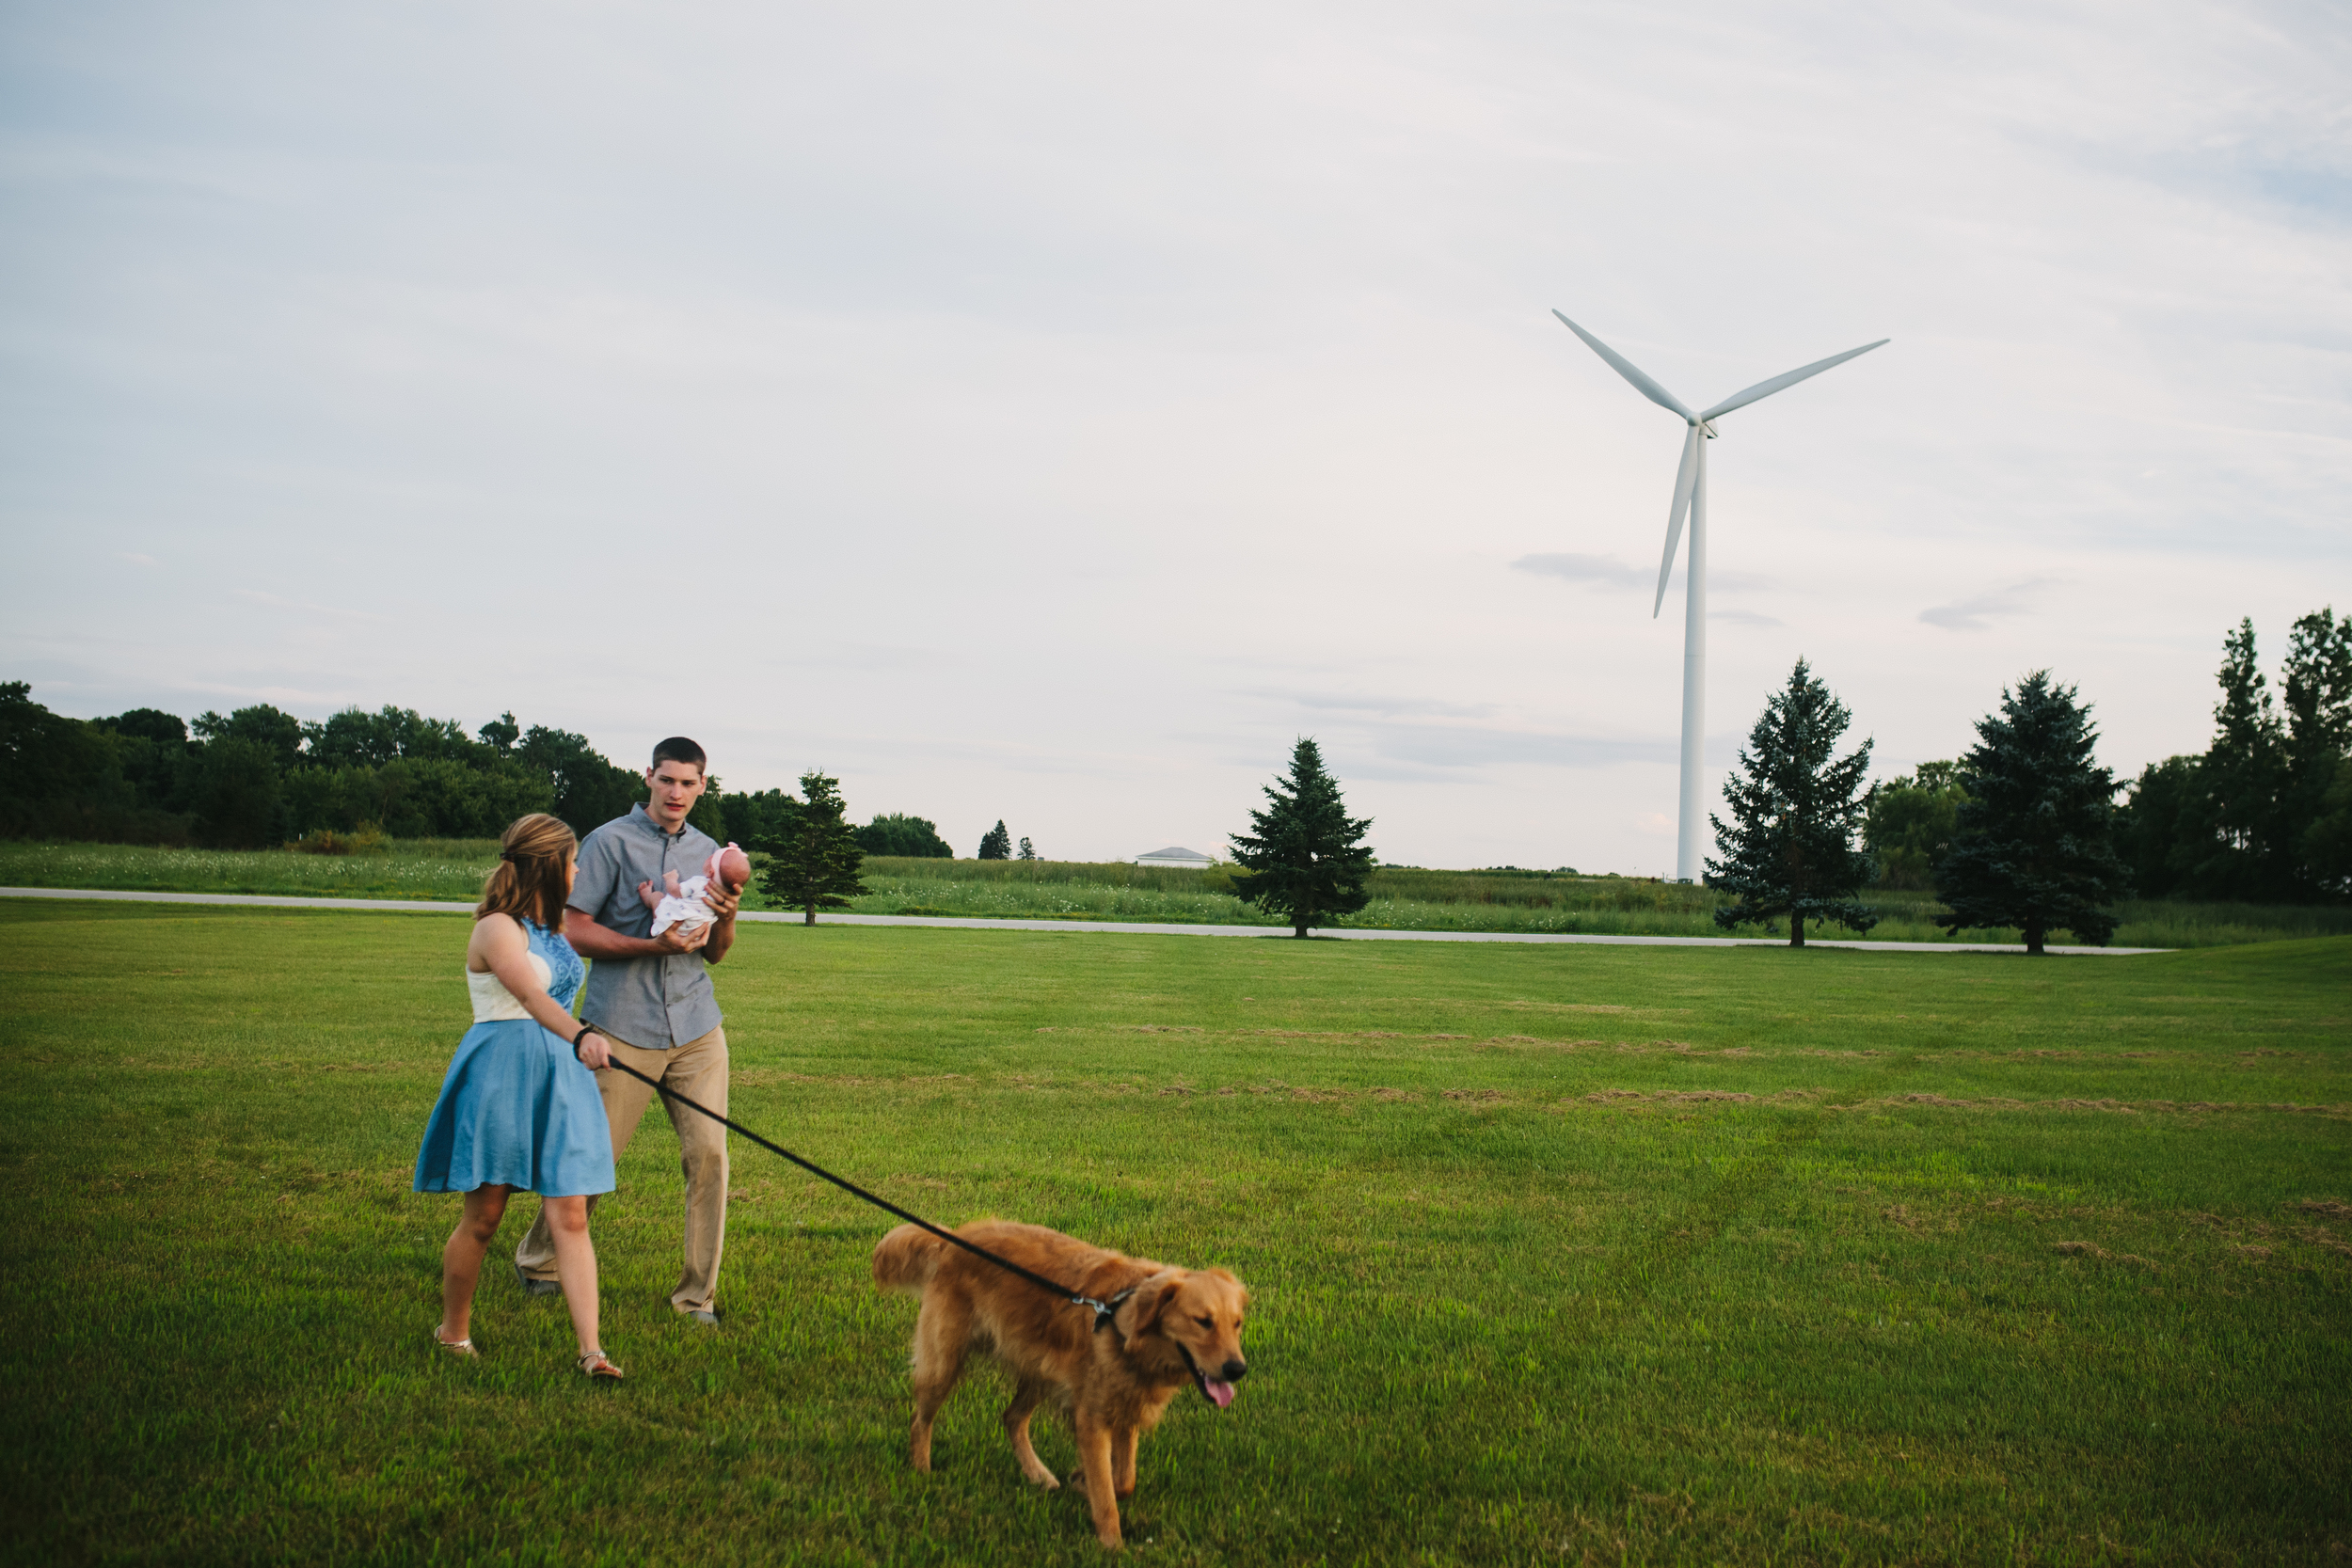 image of mother and father with newborn baby and dog with windmill in the background